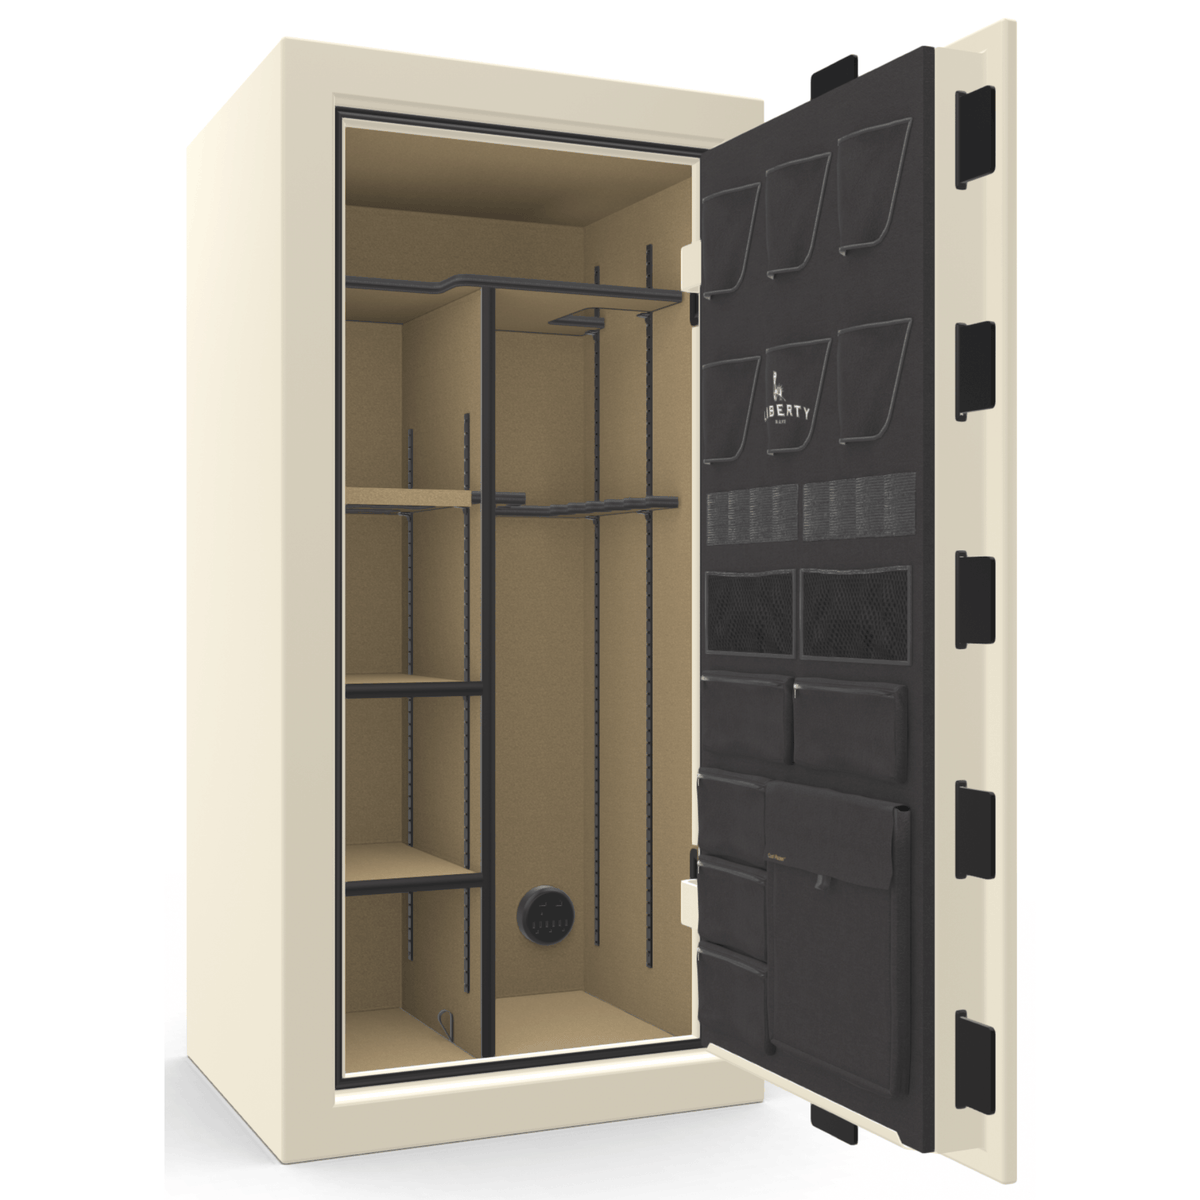 "Franklin | 25 | Level 4 Security | 75 Minute Fire Protection | White Gloss | Black Electronic Lock | 60.5""(H) x 30""(W) x 28.5""(D)"